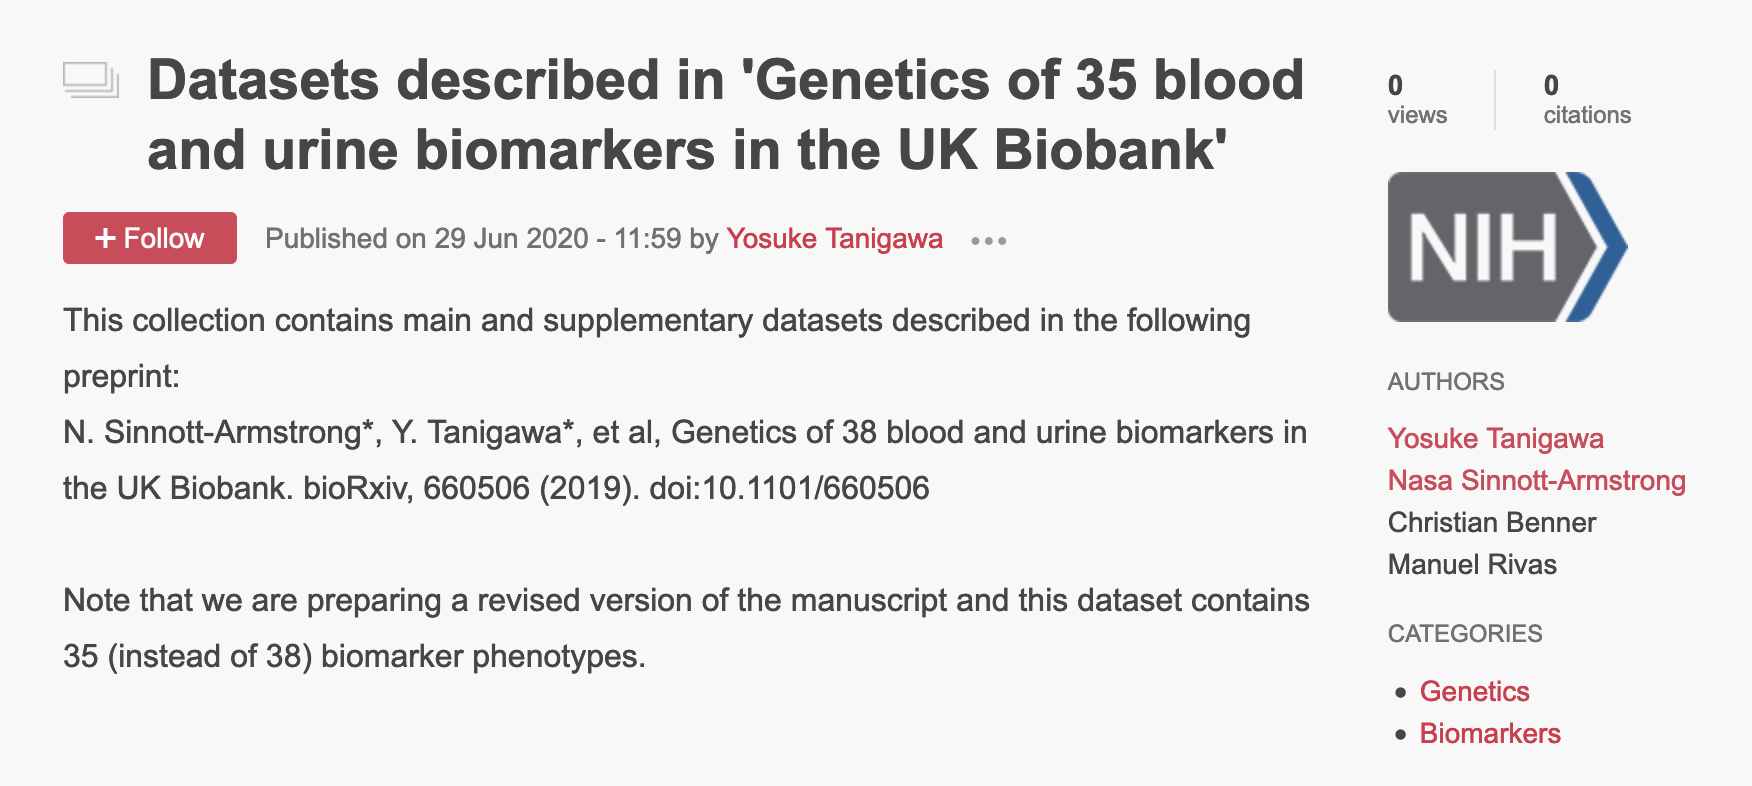 Biomarkers figshare image